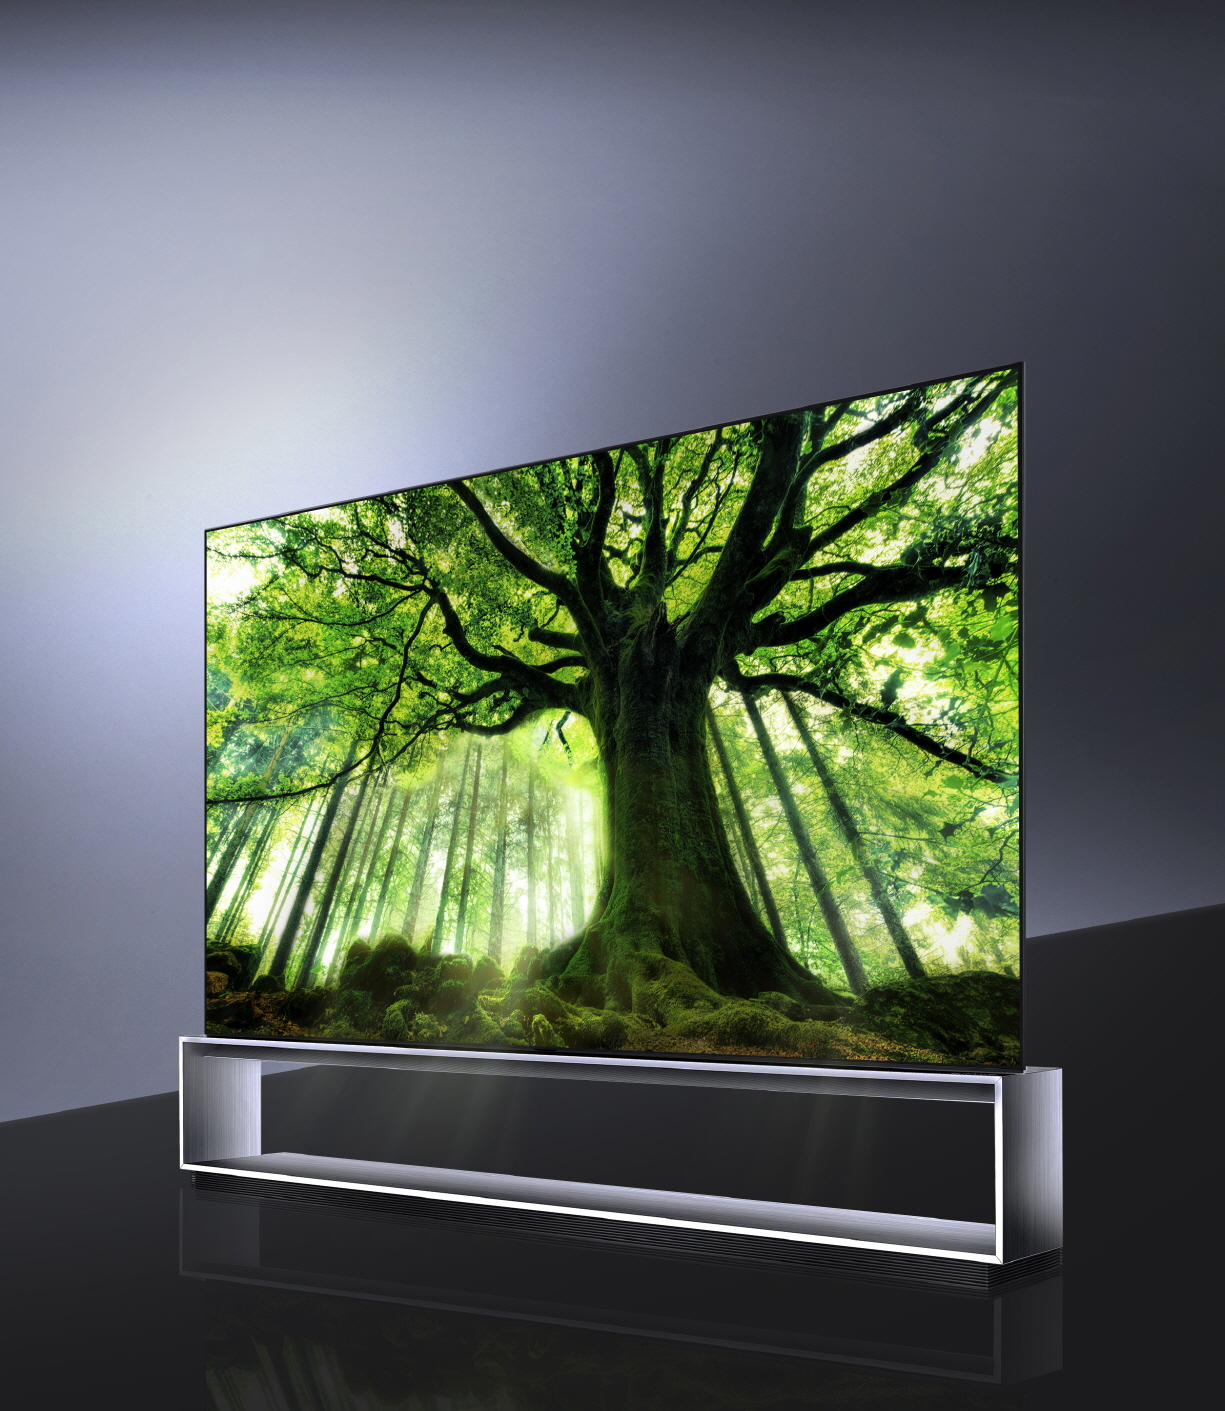 88-inch LG 8K OLED TV now available for $42000